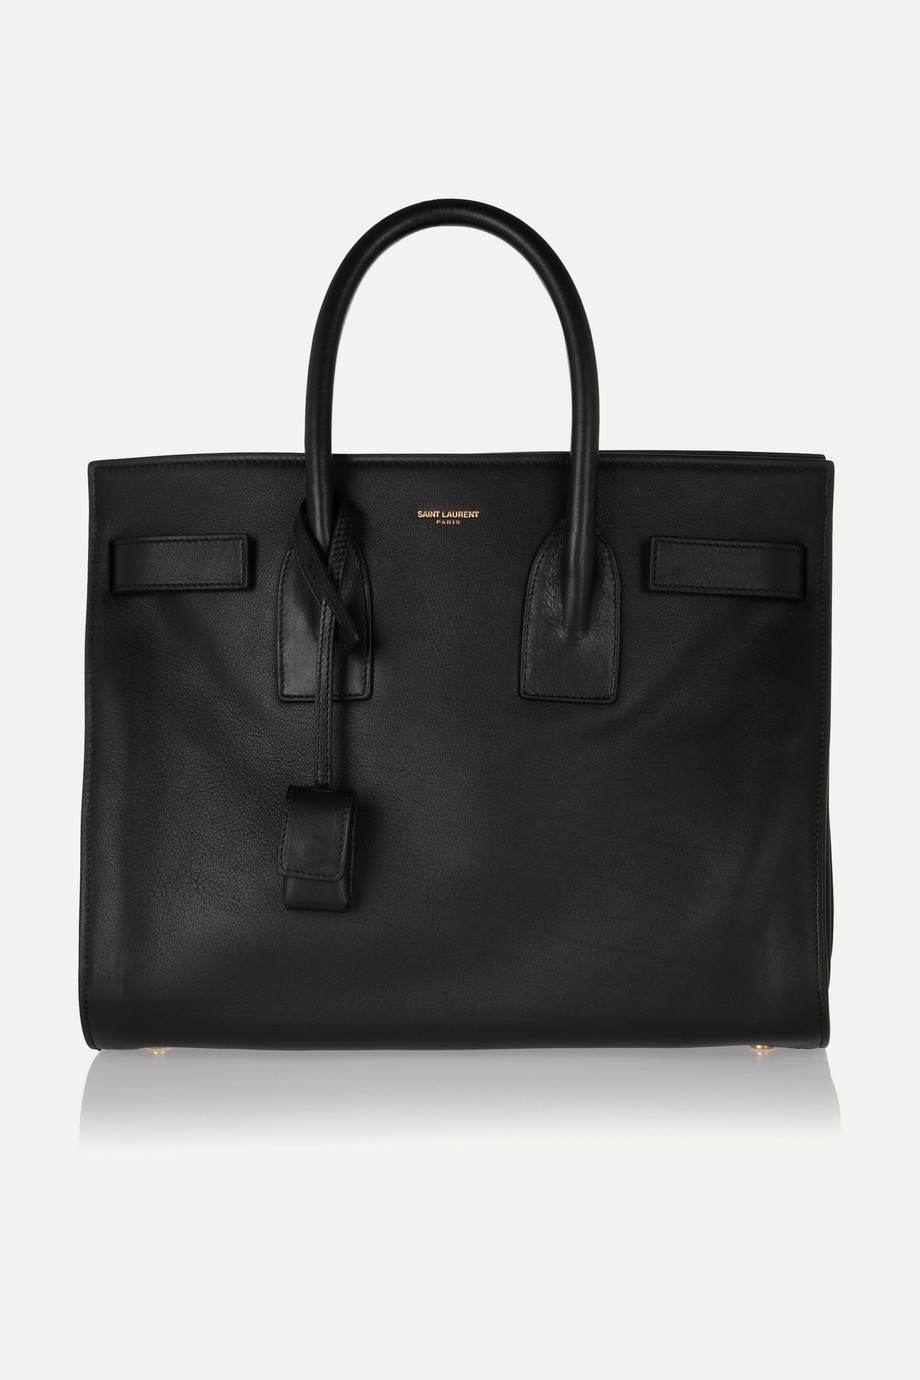 Saint Laurent Sac De Jour Small Leather Tote, Black, Women's, Size: One Size